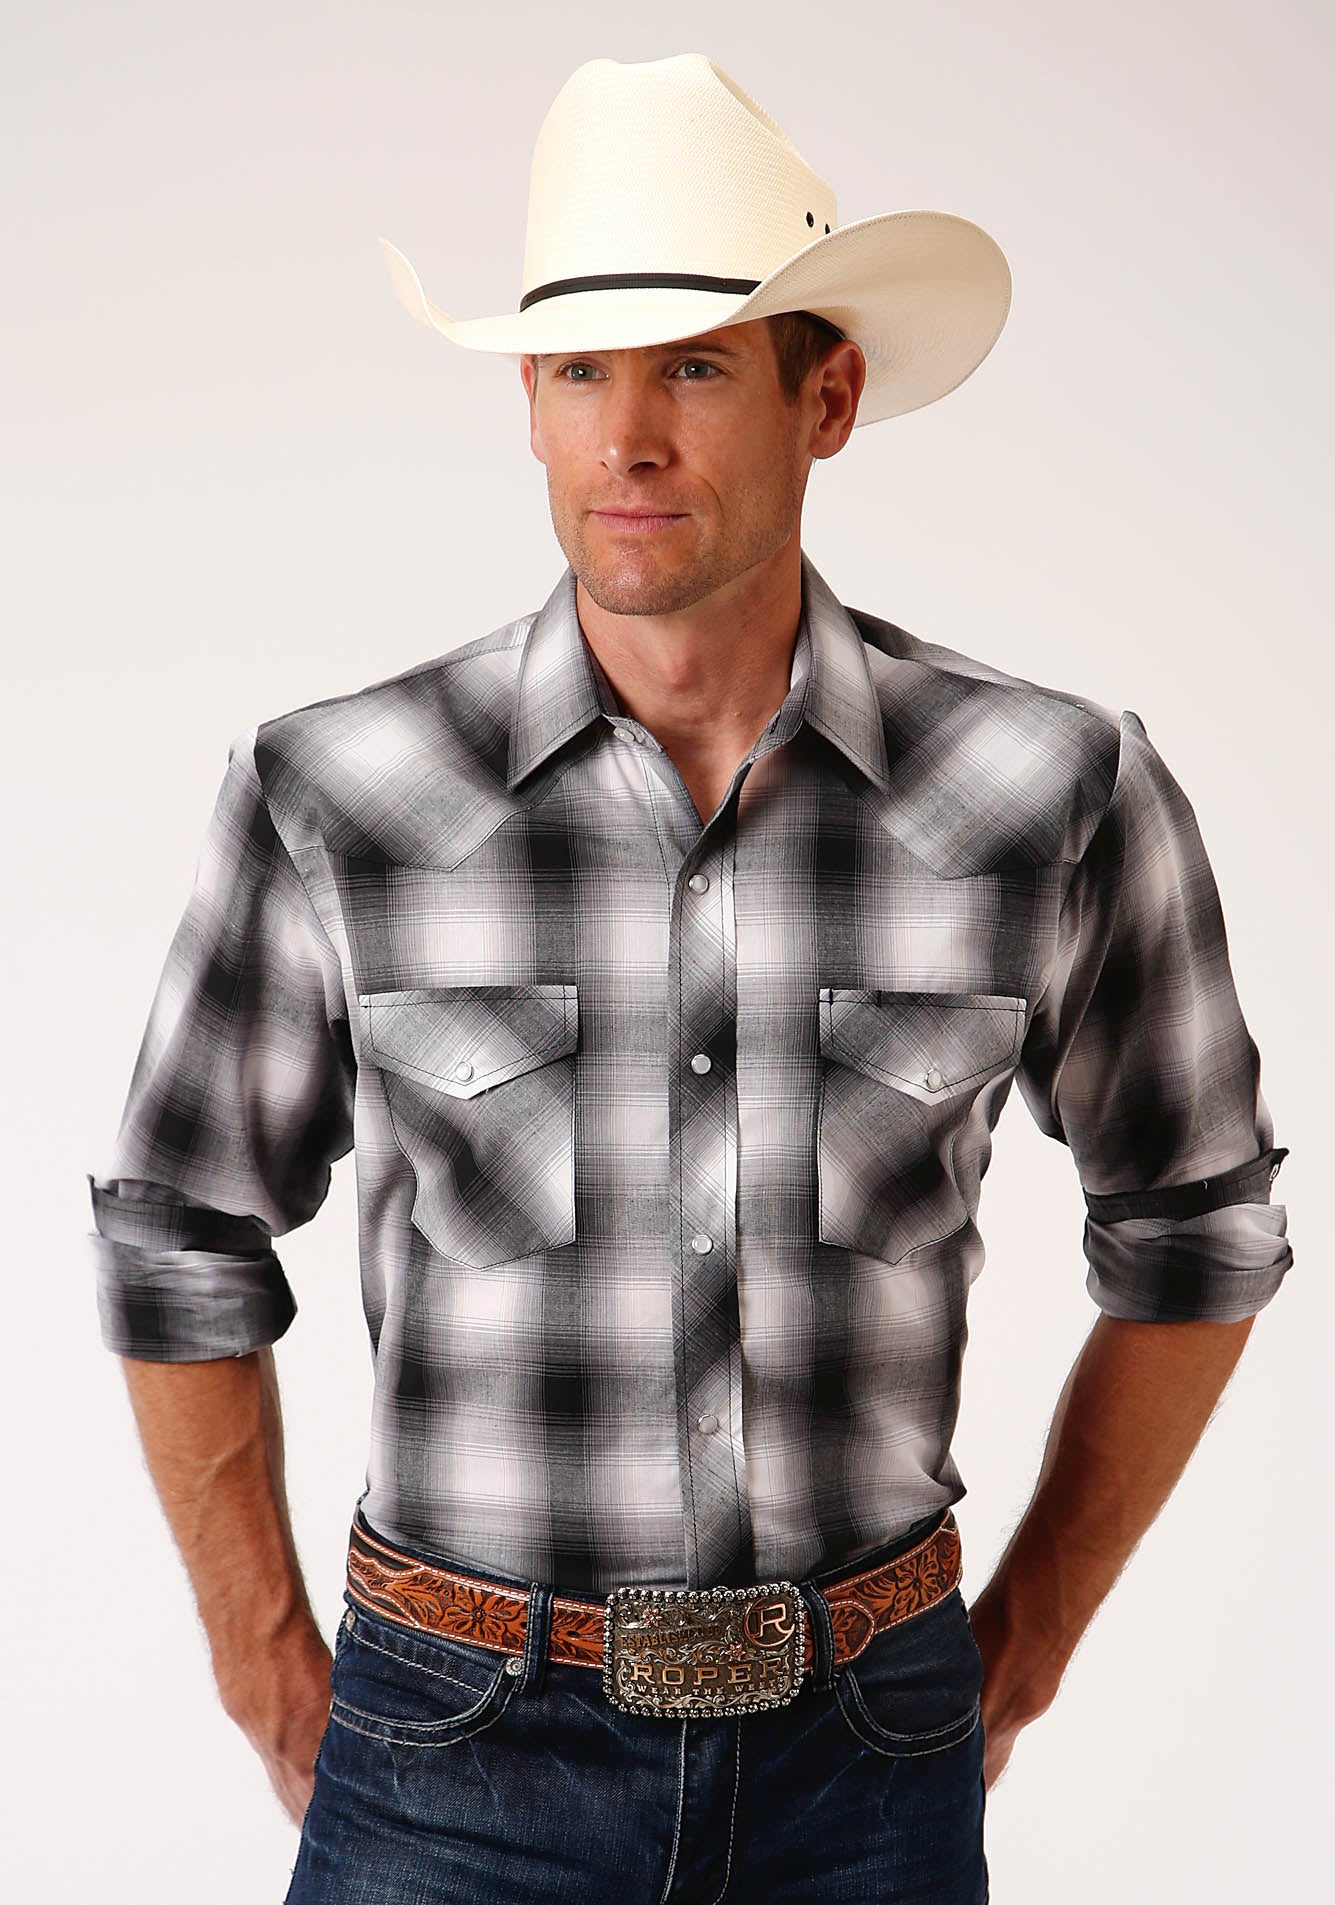 ROPER MENS BLACK 00211 BLACK, GREY, & WHITE PLAID KARMAN CLASSICS- 55/45 PLAIDS LONG SLEEVE